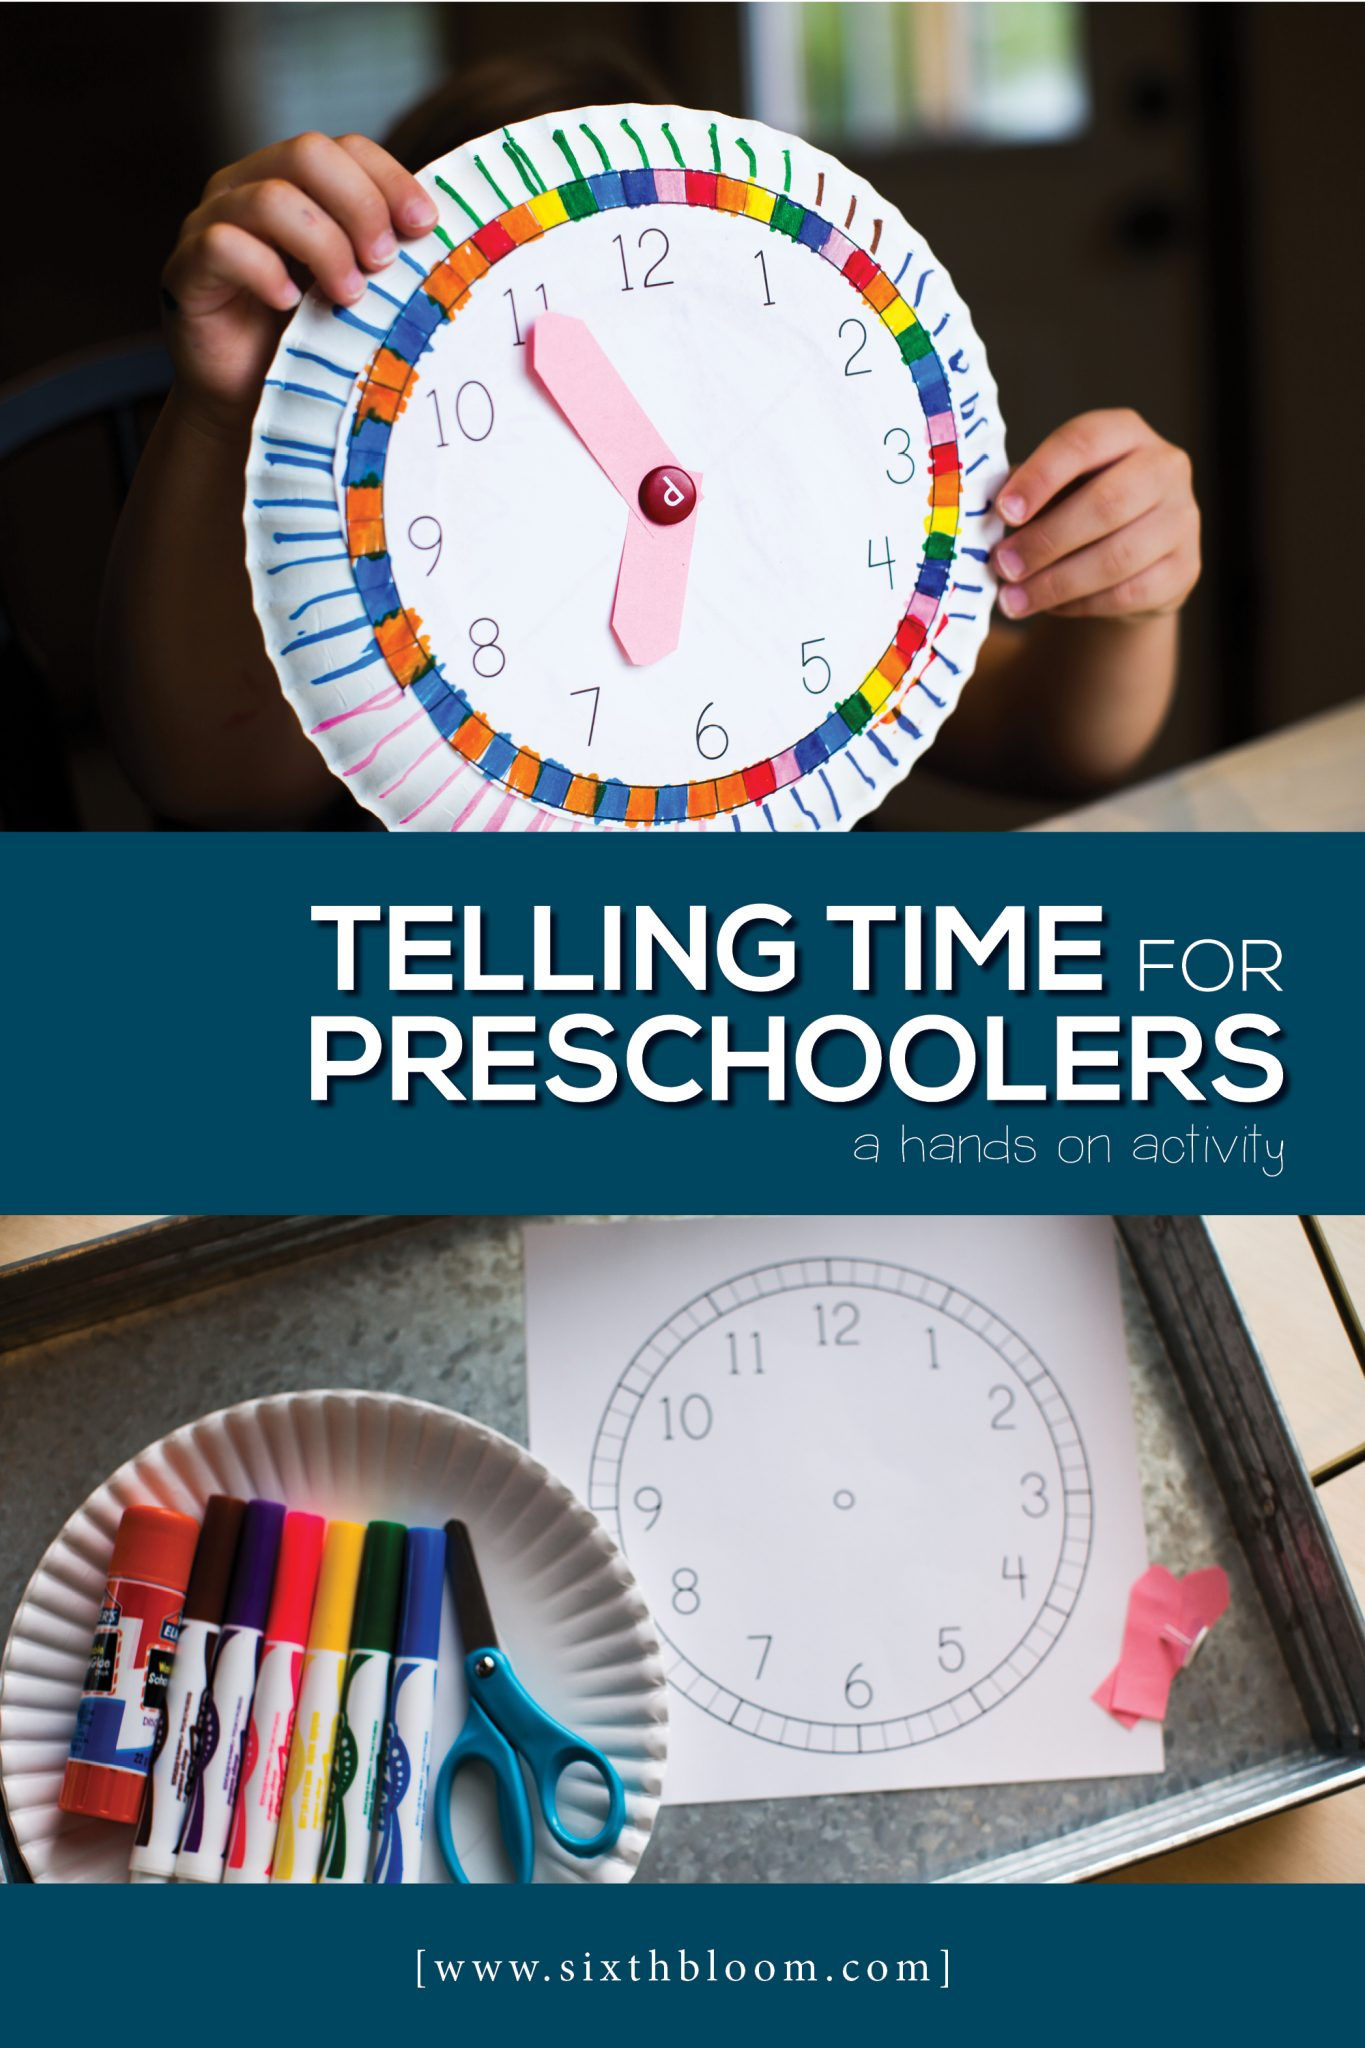 Telling Time for Preschoolers